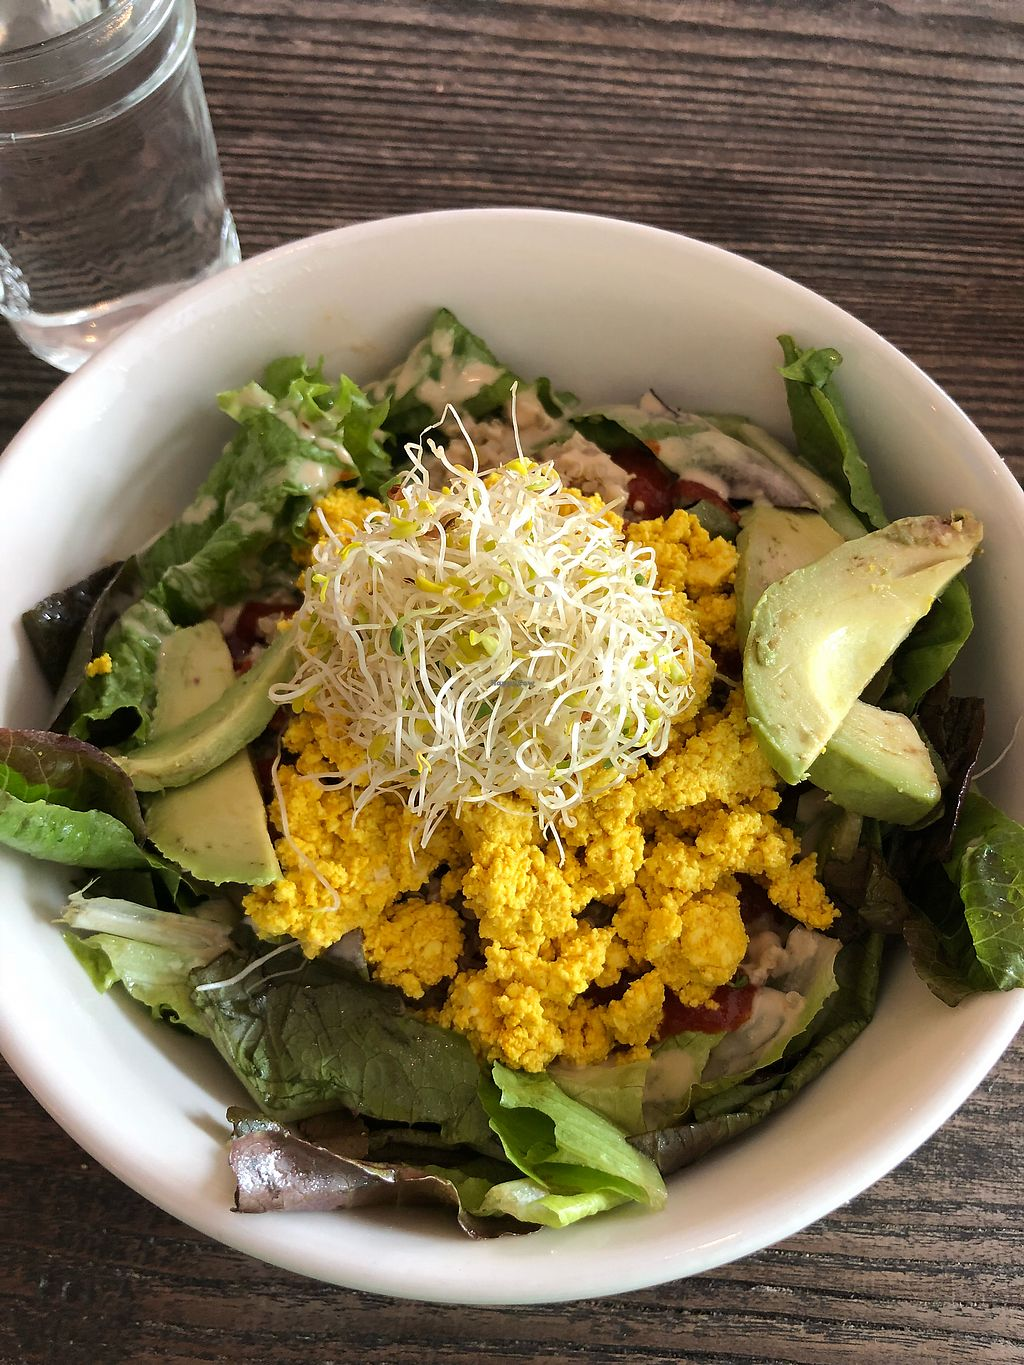 "Photo of Southern Roots Filling Station  by <a href=""/members/profile/dittev"">dittev</a> <br/>Thai peanut bowl  <br/> November 14, 2017  - <a href='/contact/abuse/image/55357/325691'>Report</a>"